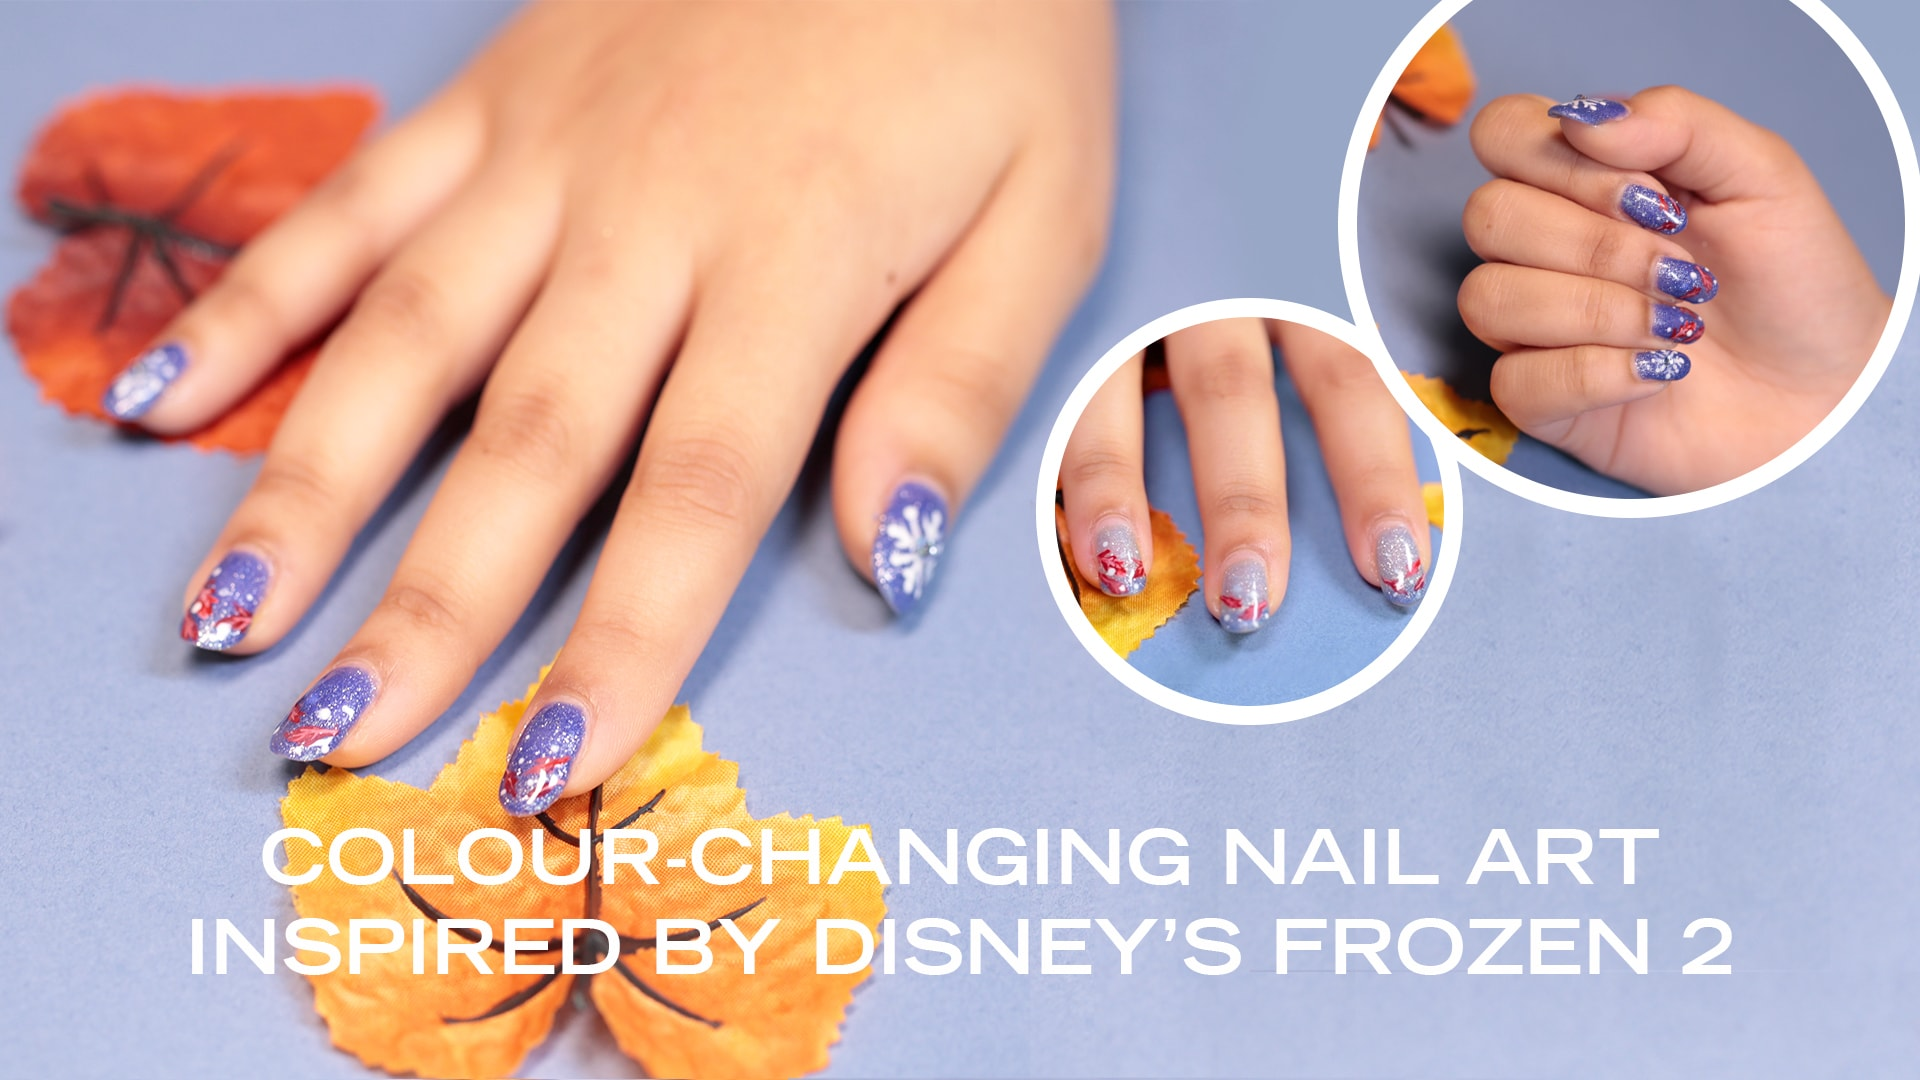 This Is Colour-Changing Nail Art Inspired By Disney's Frozen 2 That We Need